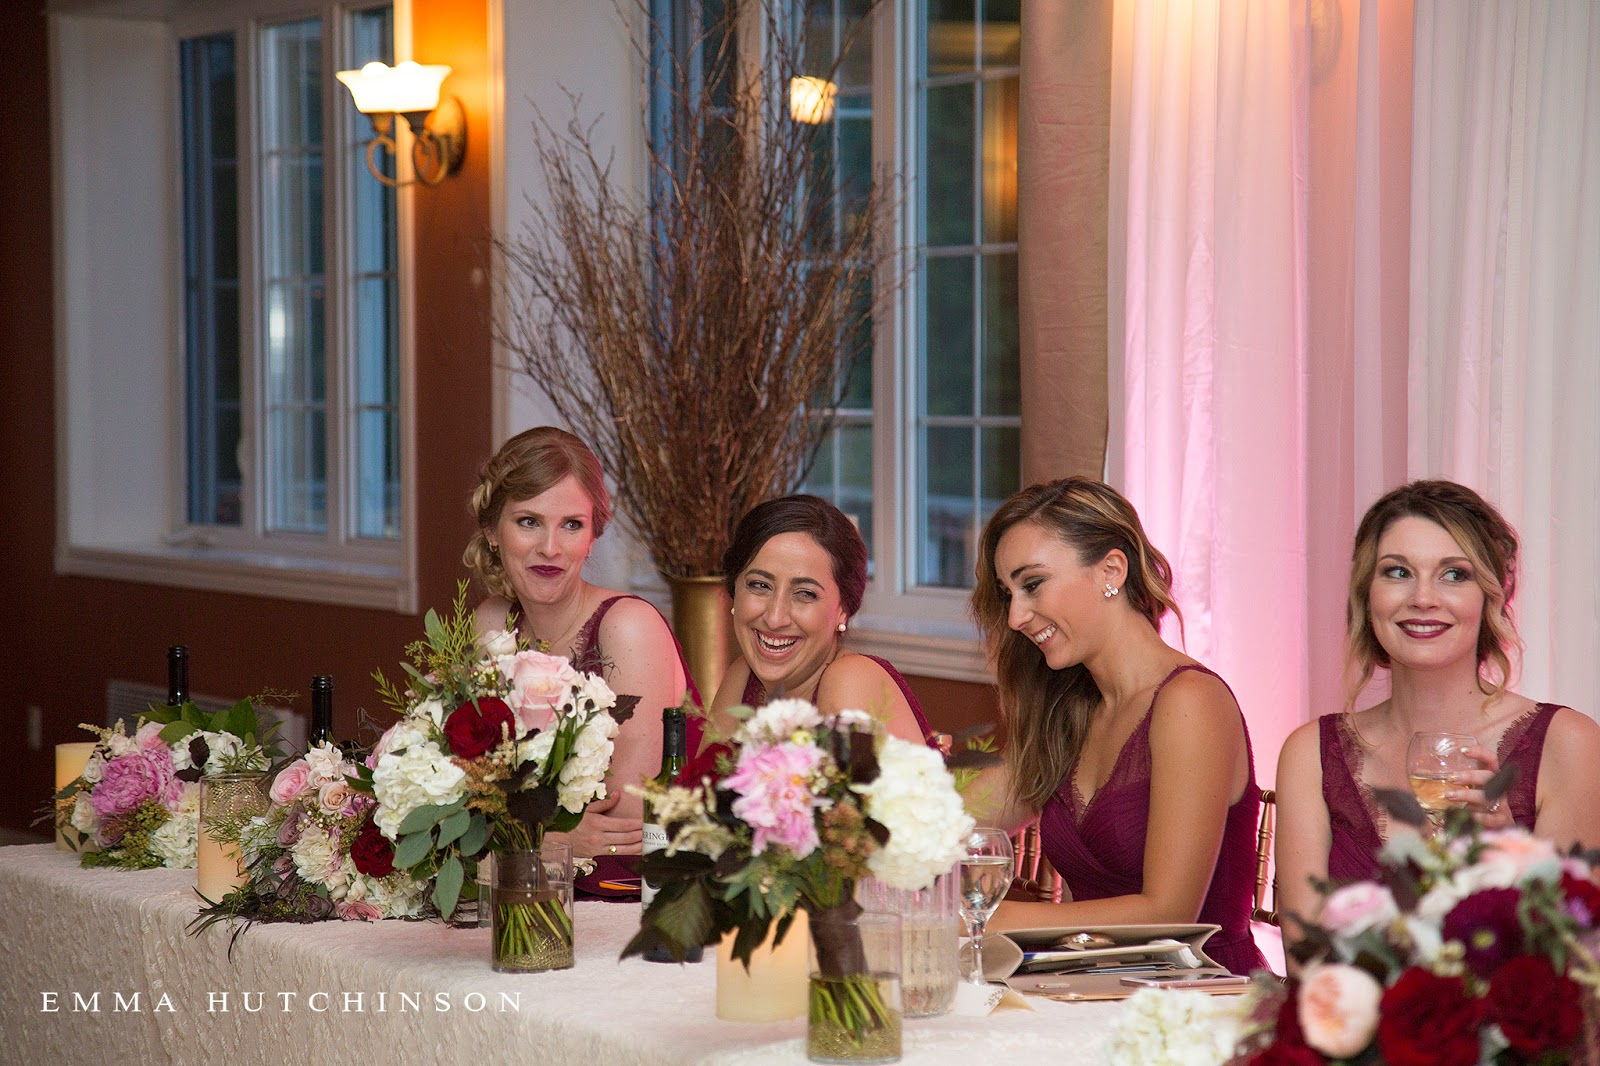 Emma Hutchinson photography photographs weddings at the Grand Falls Golf Club